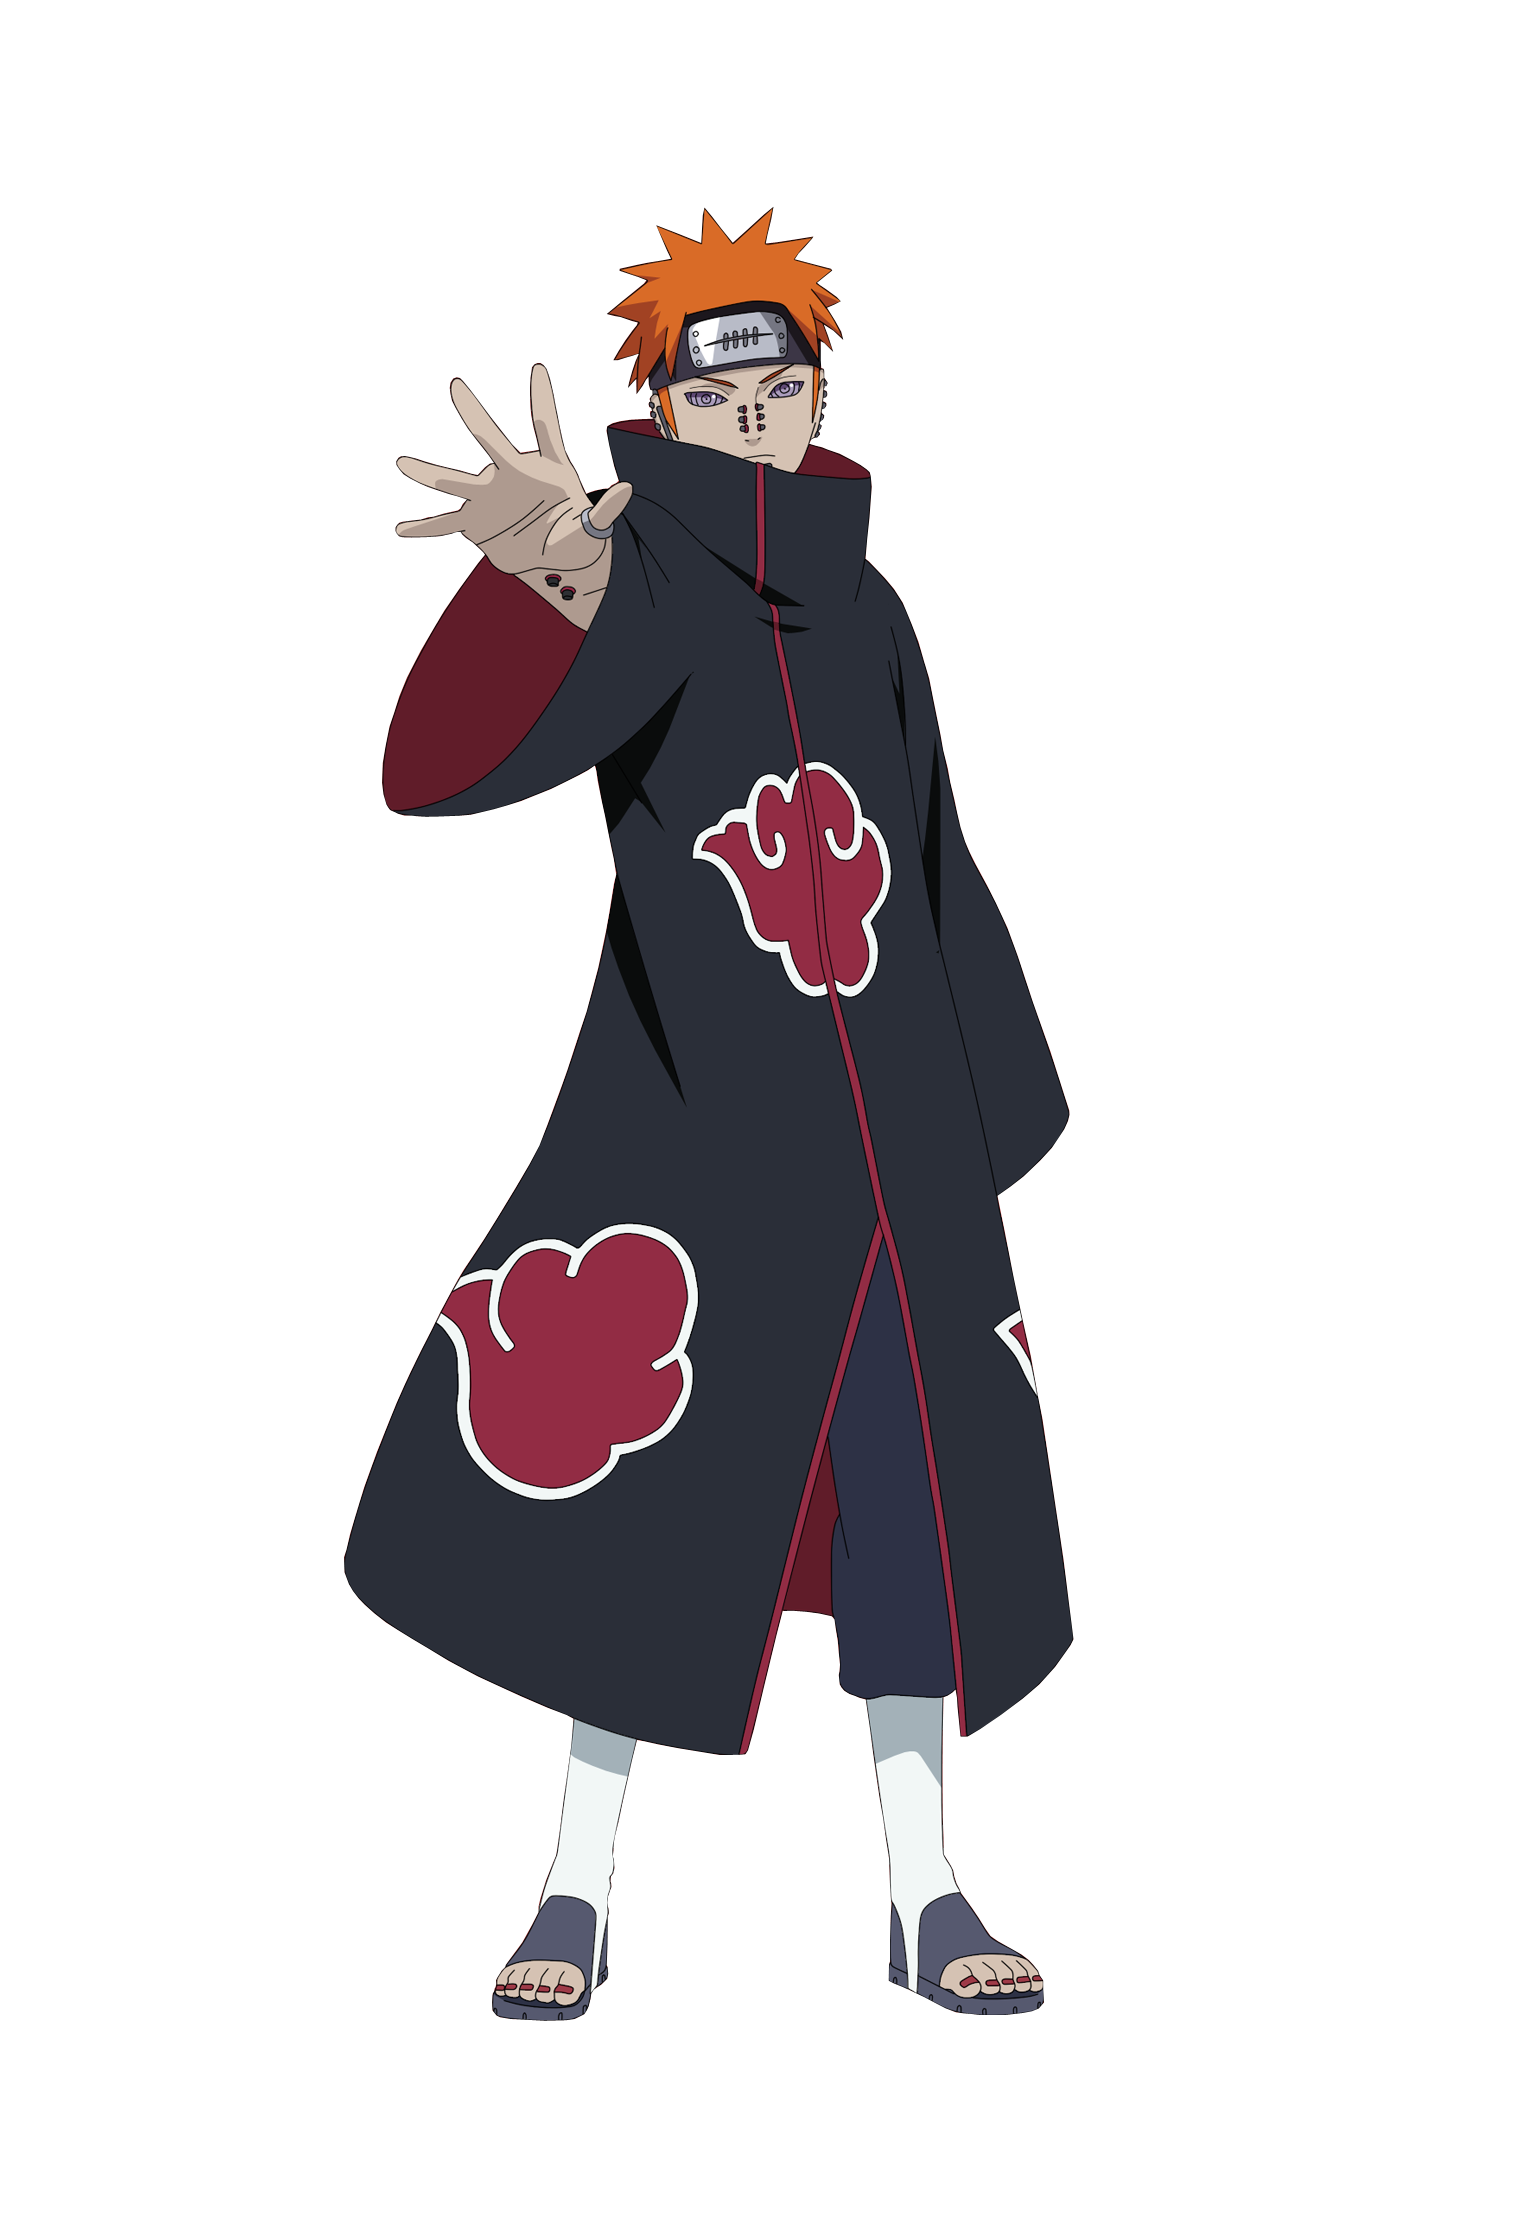 Naruto pain png. Images transparent free download